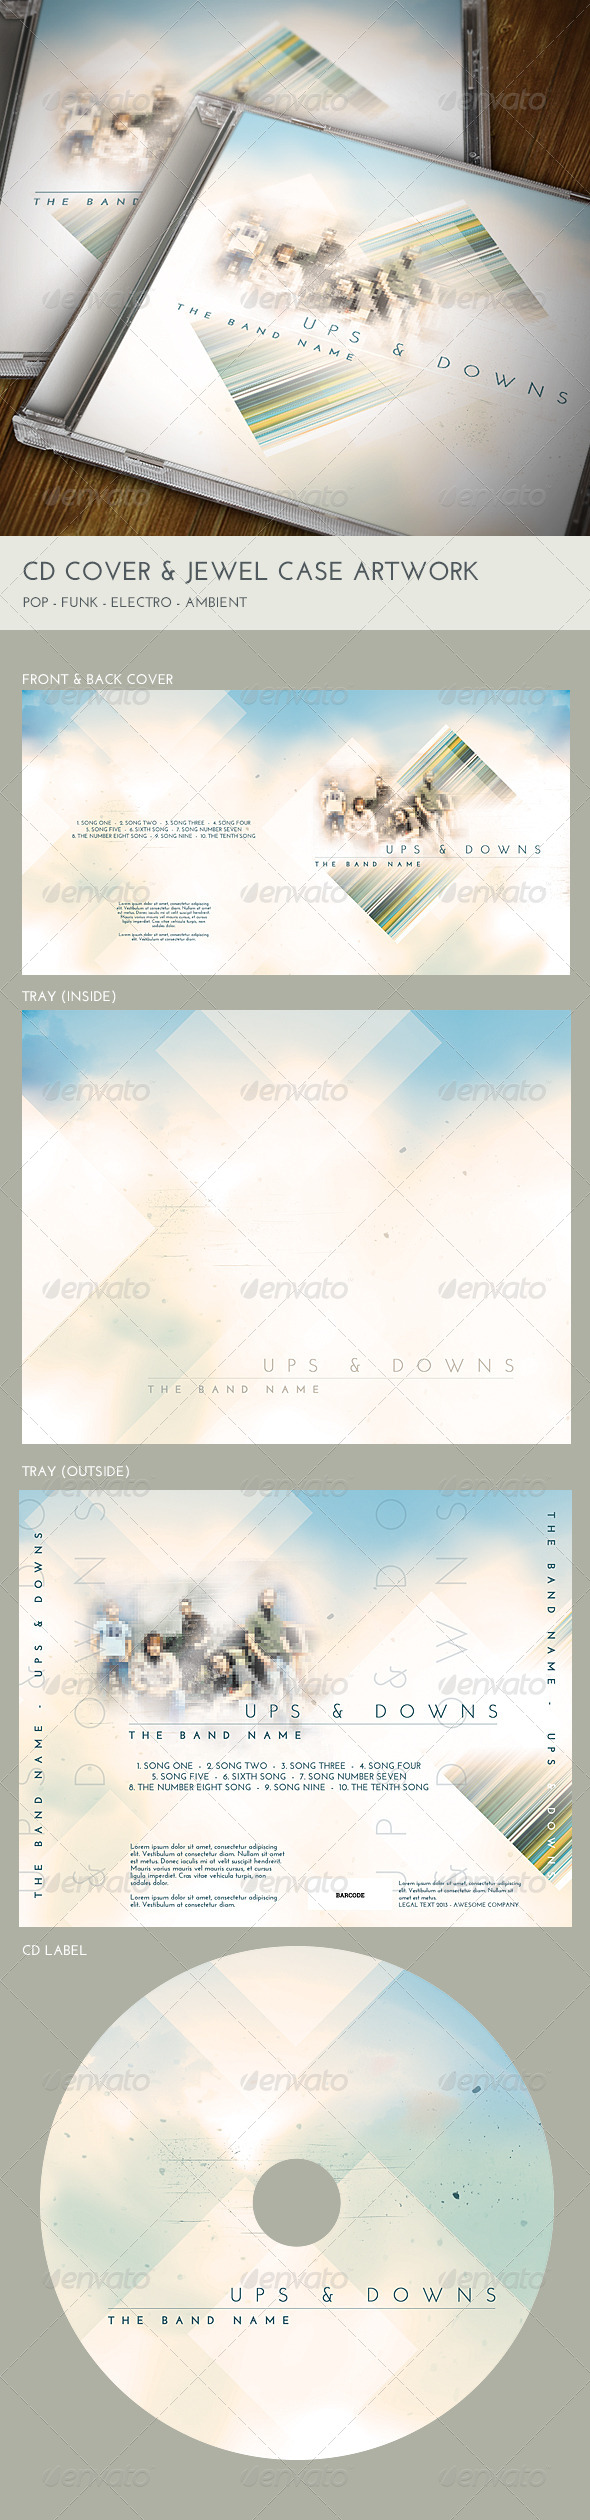 GraphicRiver CD Cover and Jewel Case Artwork 6619477